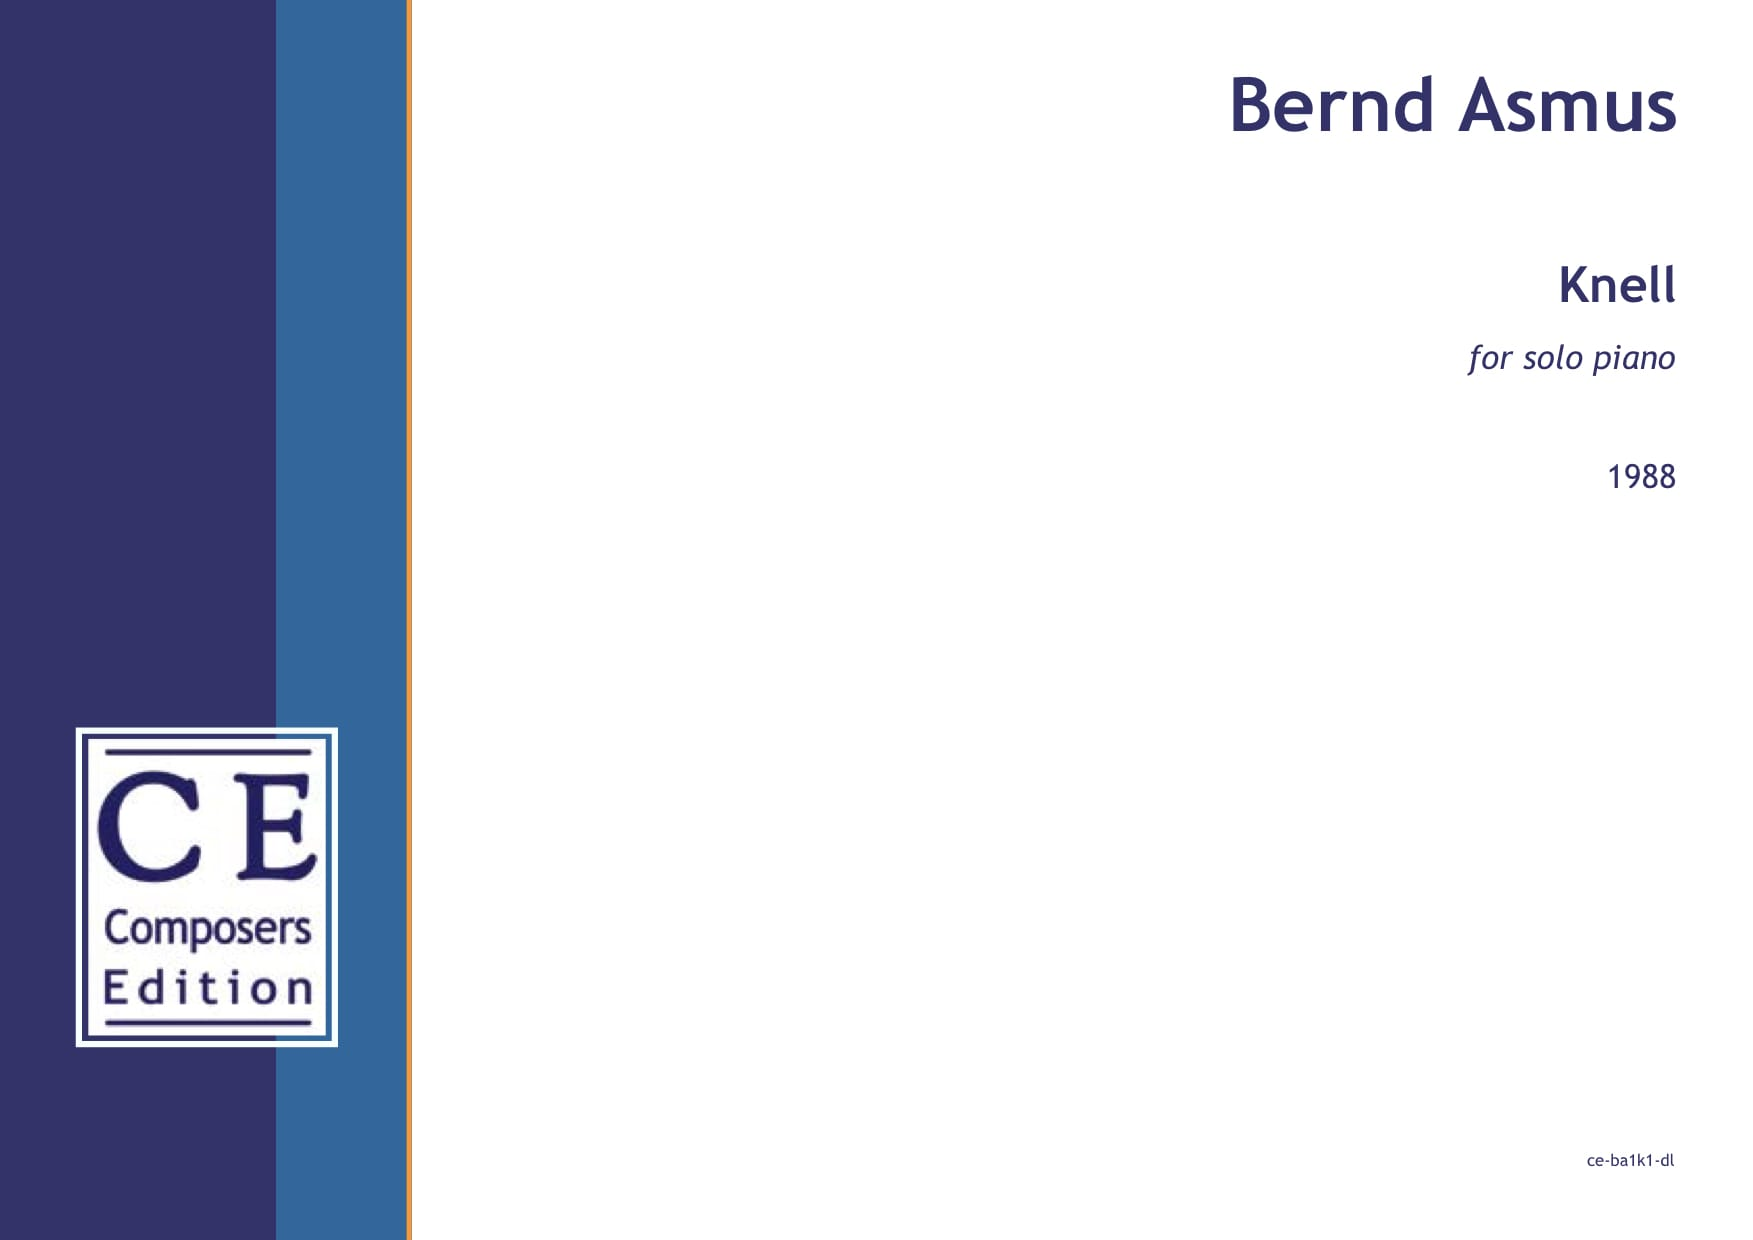 Bernd Asmus: Knell for solo piano